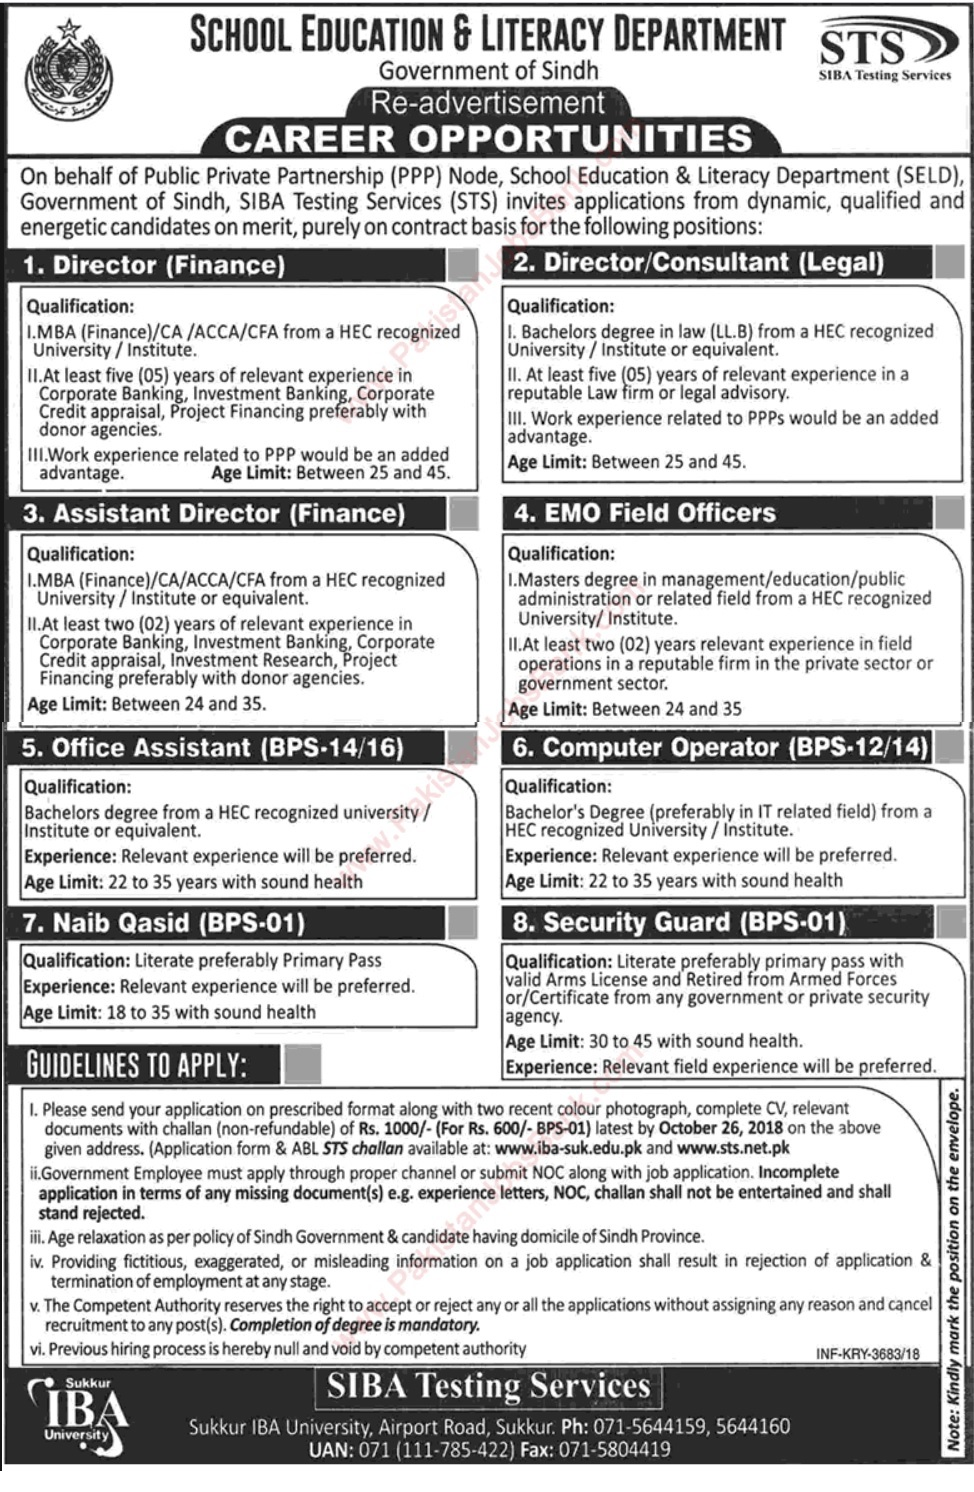 Photo of School Education & Literacy Department Latest Jobs 2020